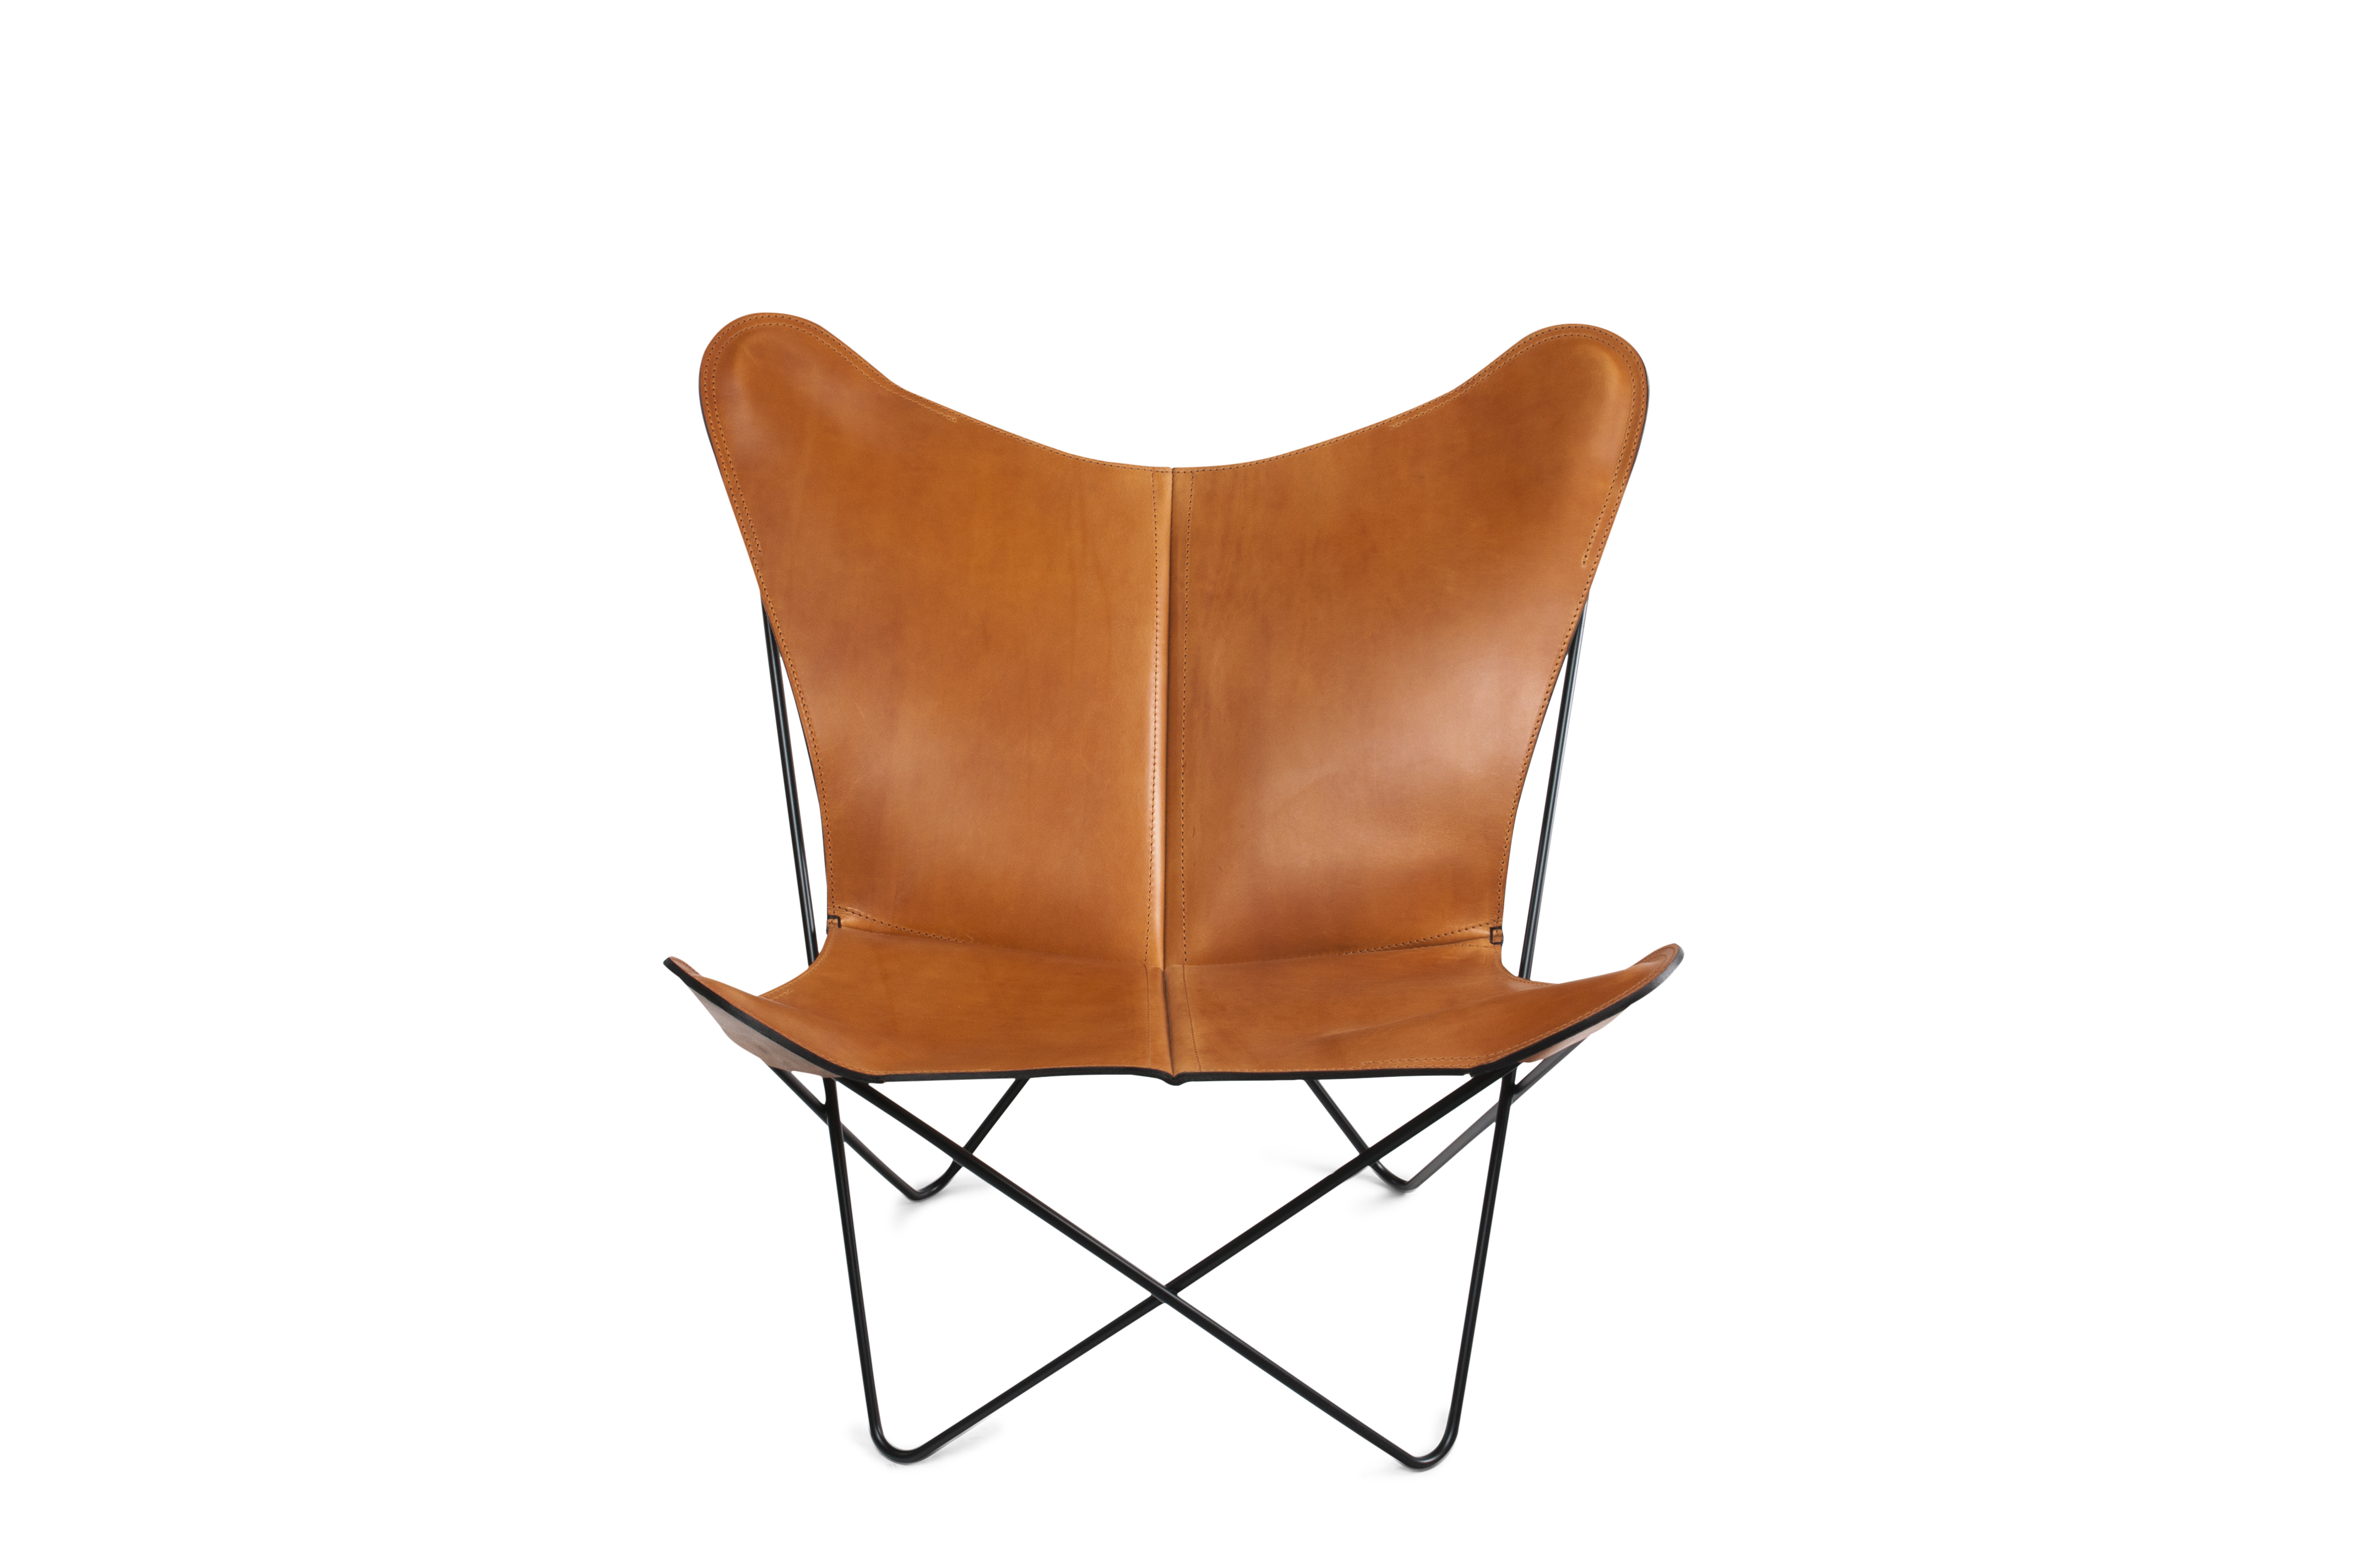 Ox DenmarQ Trifolium Chair available at Nordic Urban in Berlin